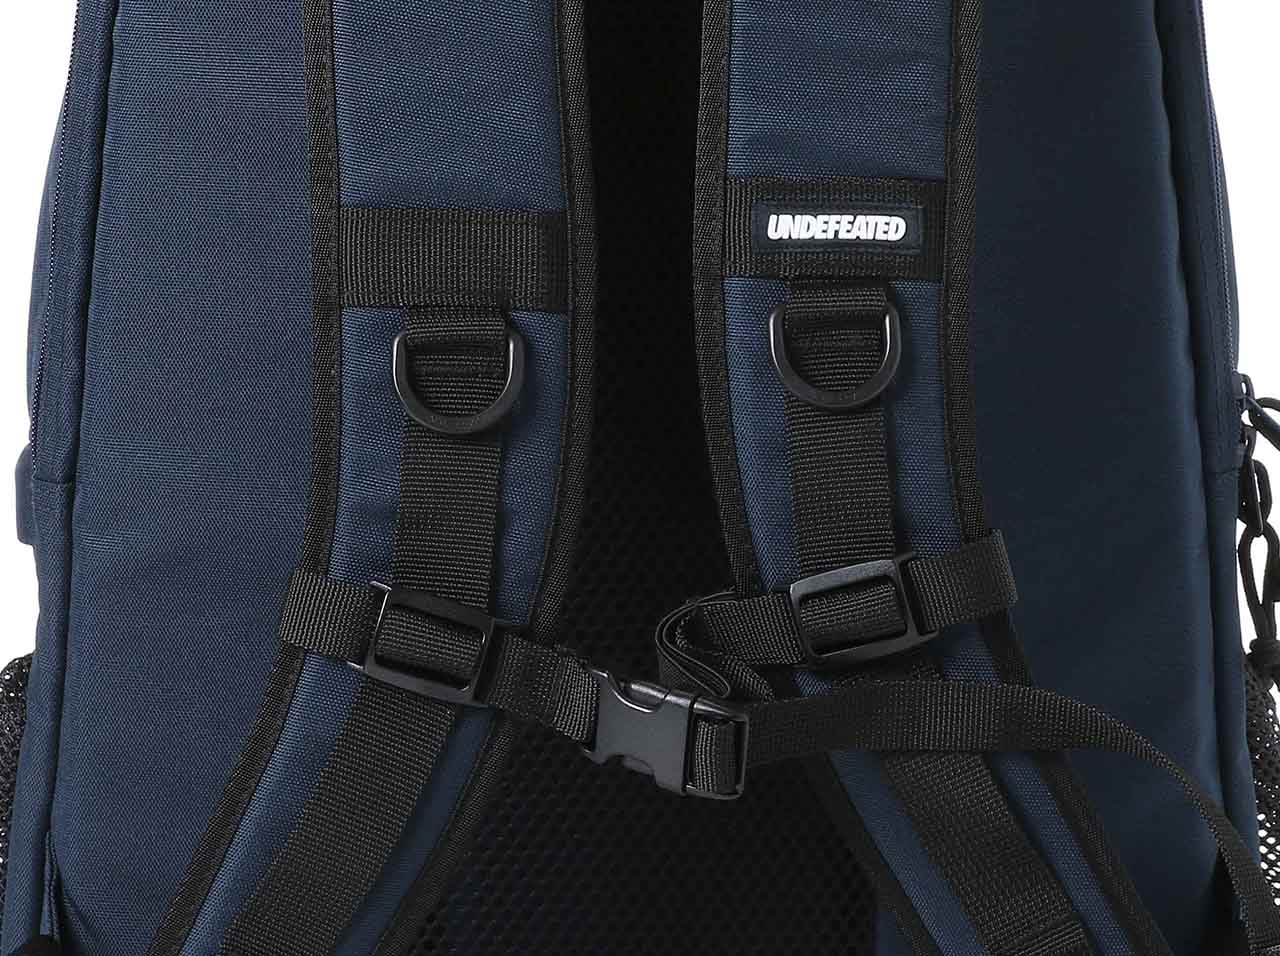 UNDEFEATED BACKPACK